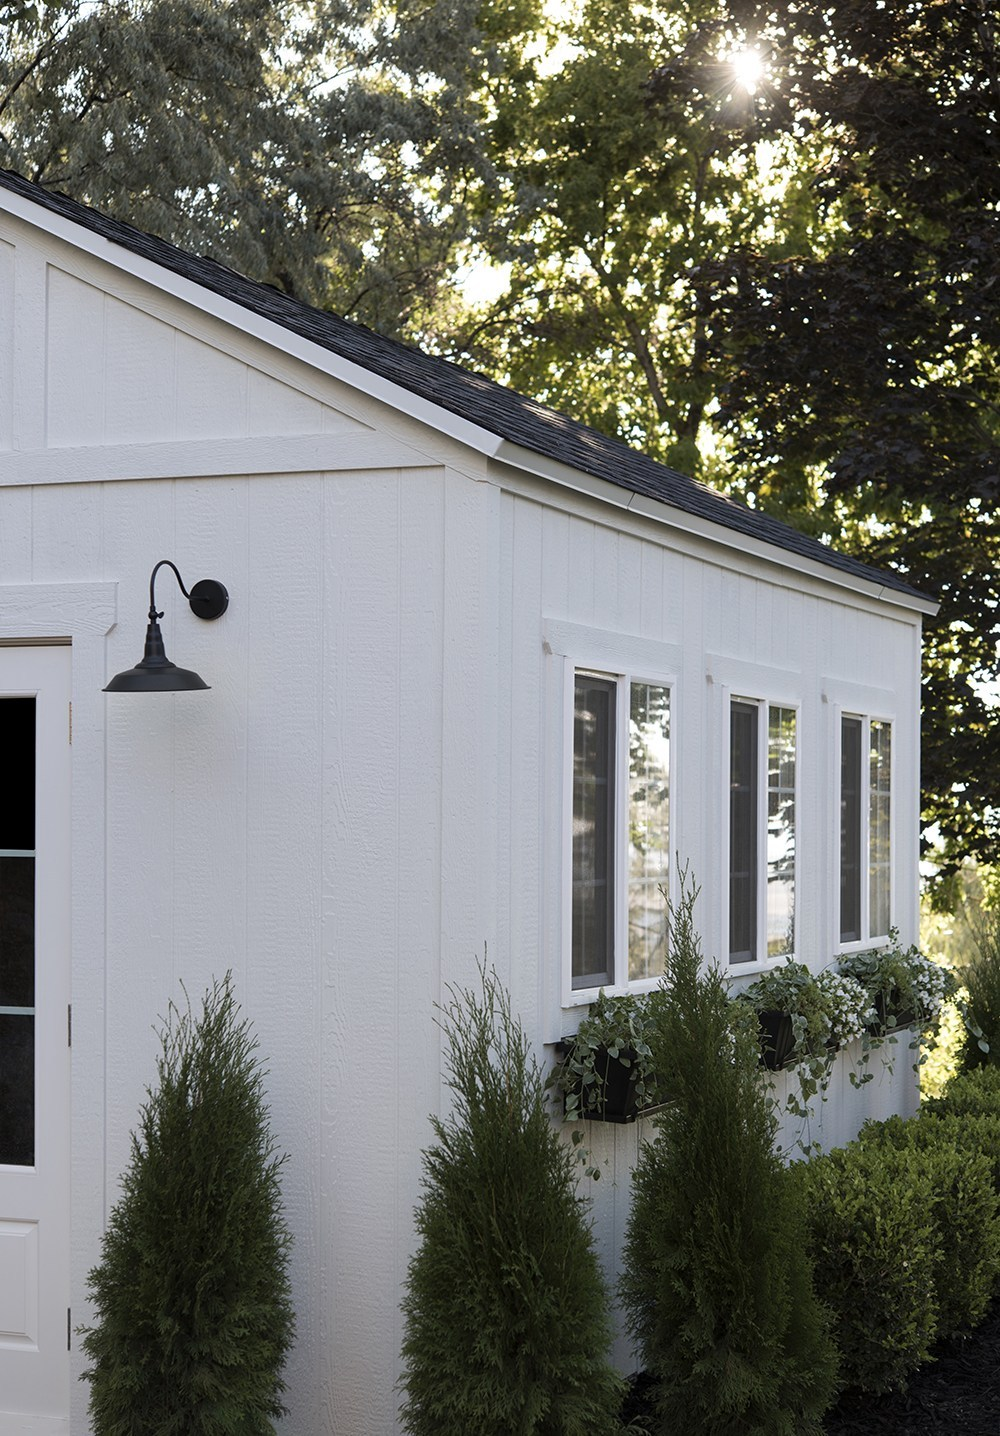 Nuance (Sherwin Williams) is name of white paint on this shed exterior with windows and window boxes - RoomforTuesday. #nurance #whitepaintcolors #exteriorcolors